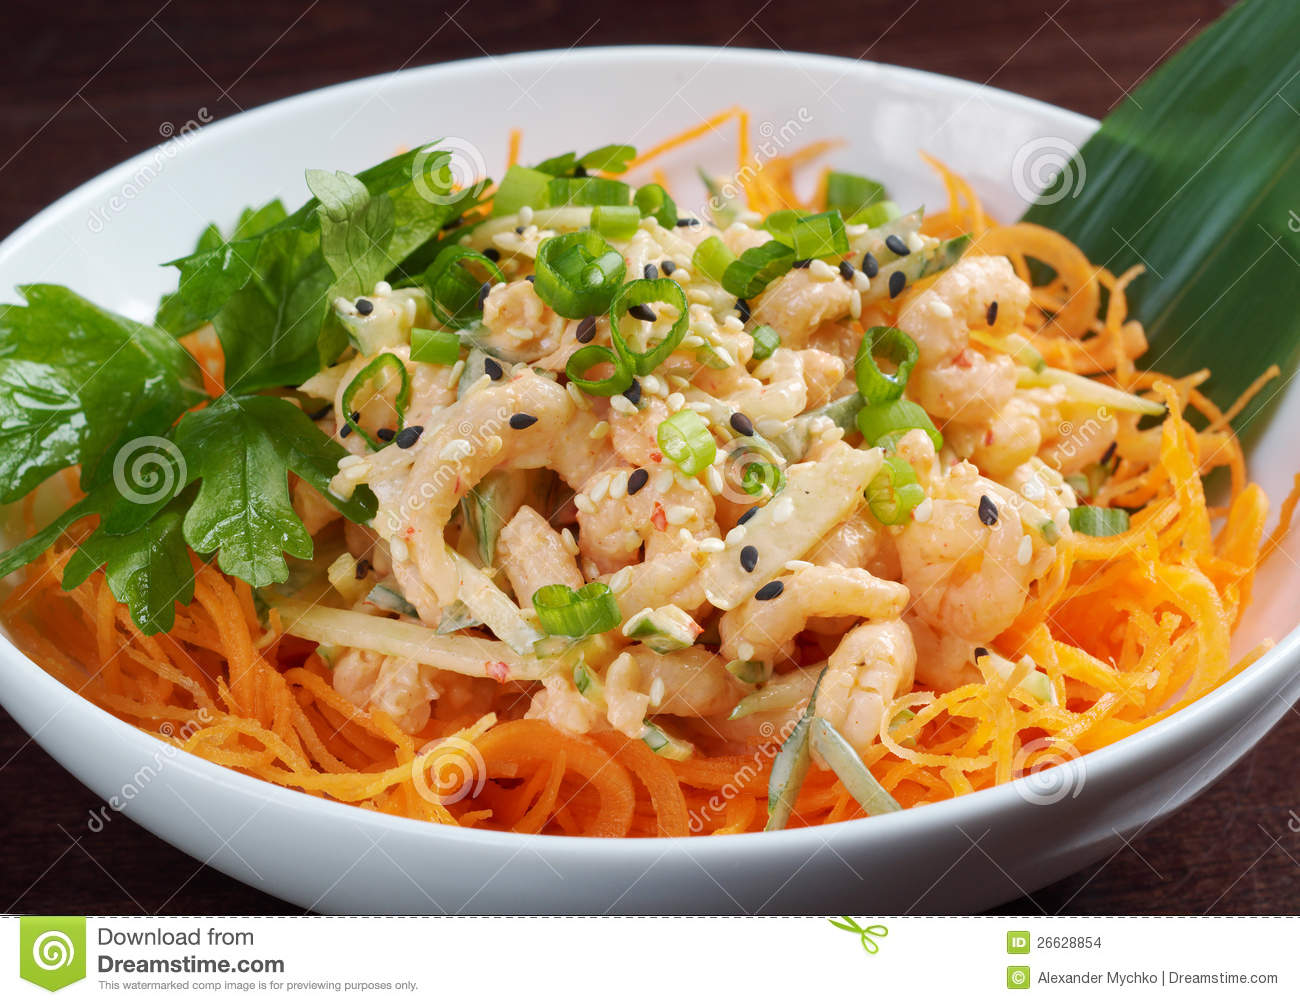 Chinese cuisine .salad of shrimp, mixed greens.